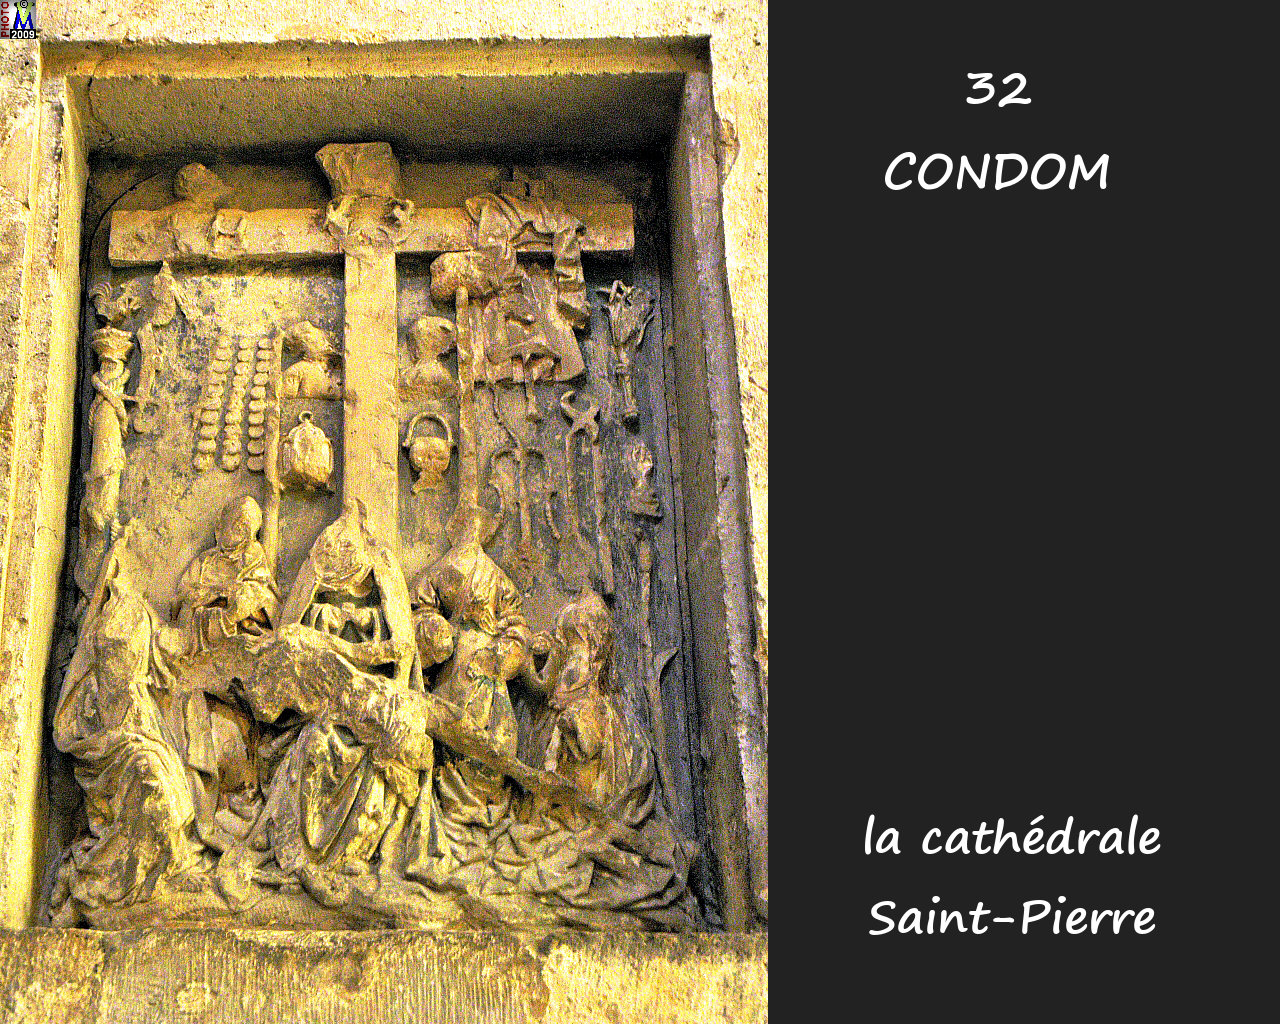 32CONDOM_cathedrale_266.jpg